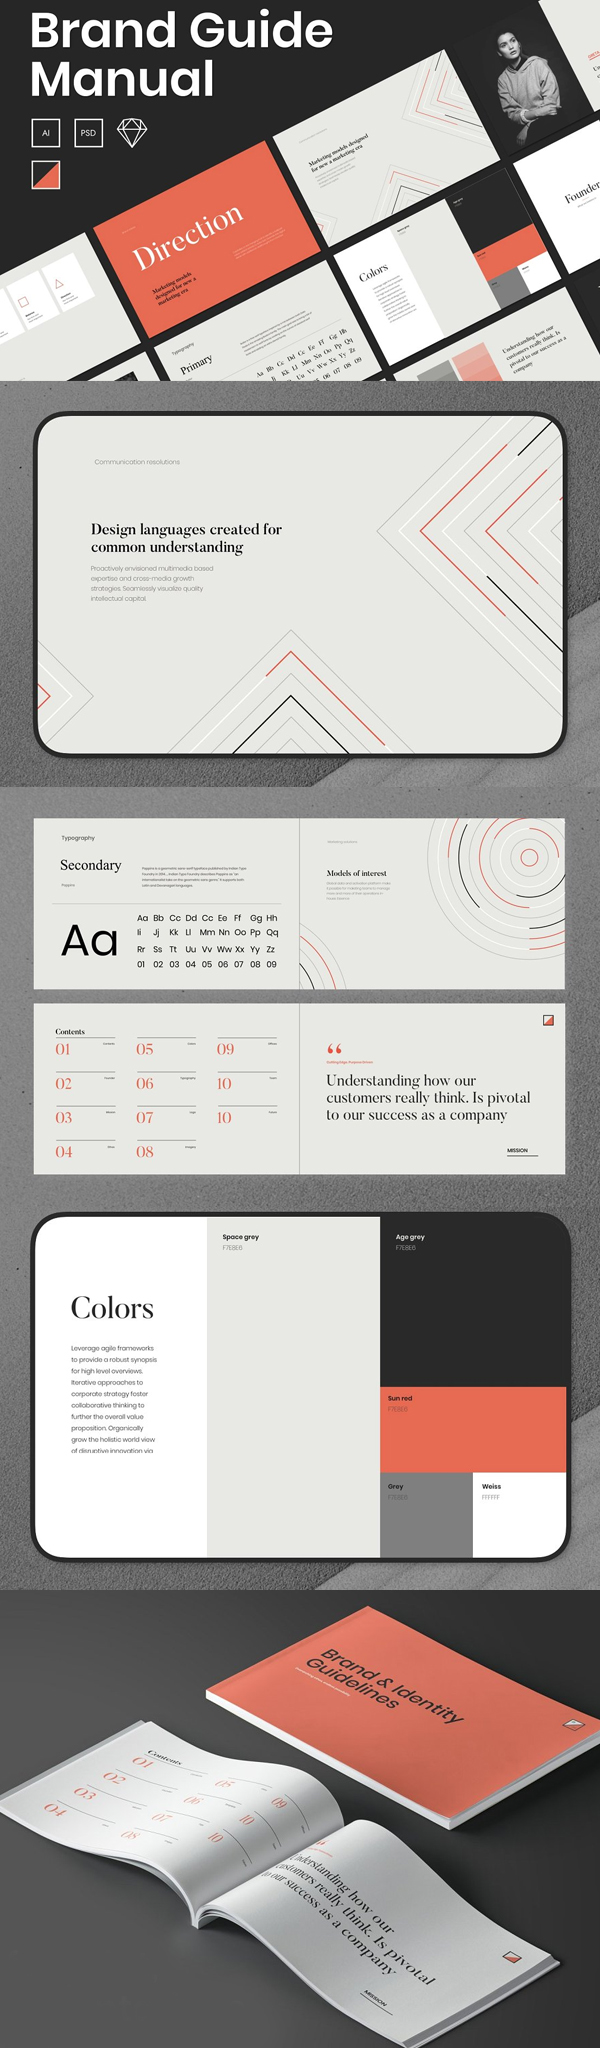 A Brand Guide - Branding Guidelines